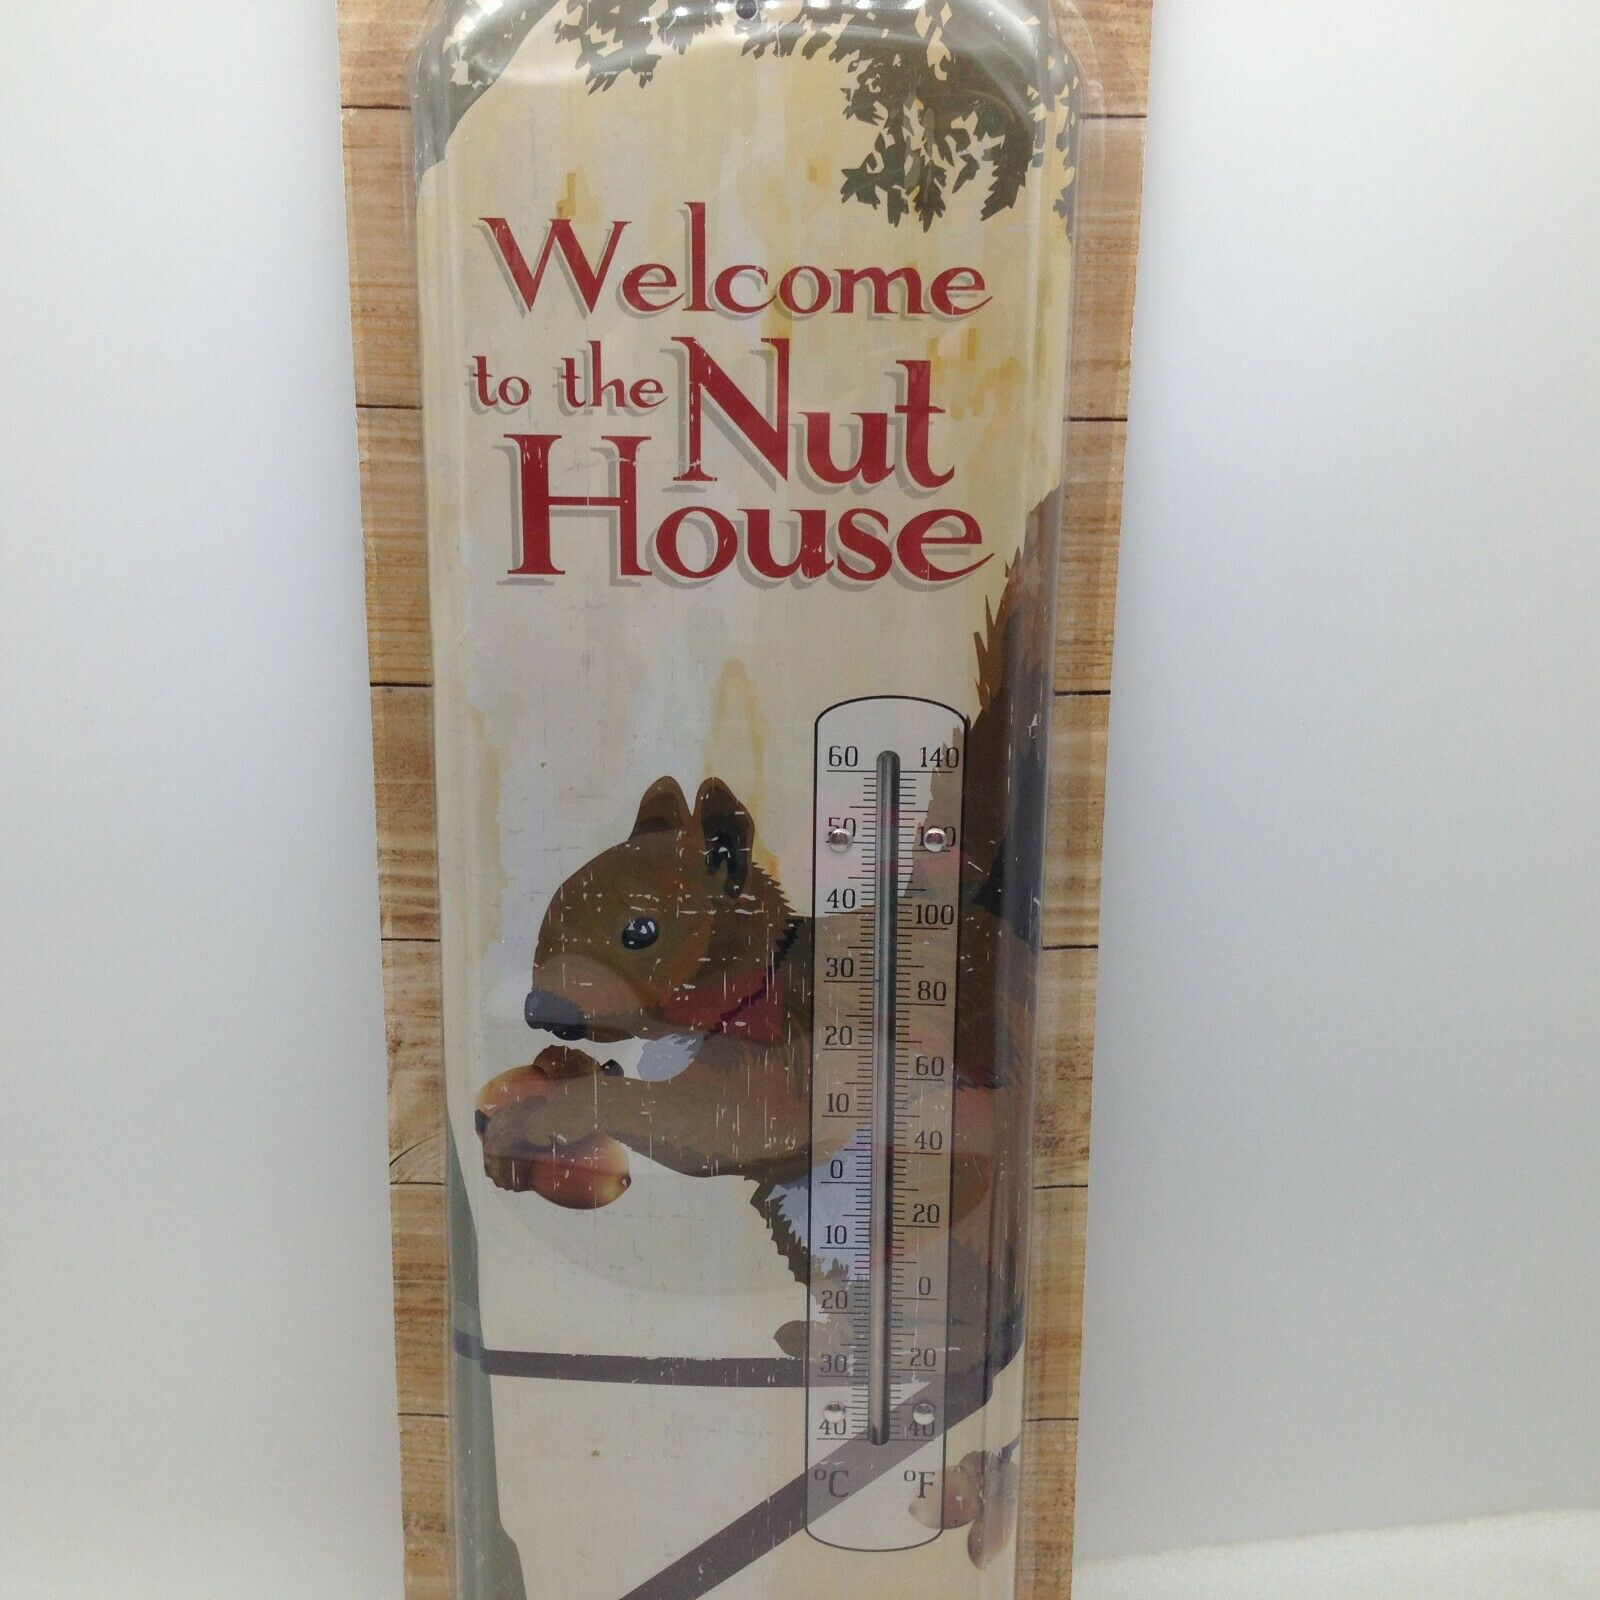 Weslcome to the Nut House Indoor Outdoor Thermometer Squirrel Metal 17.5 in Tall